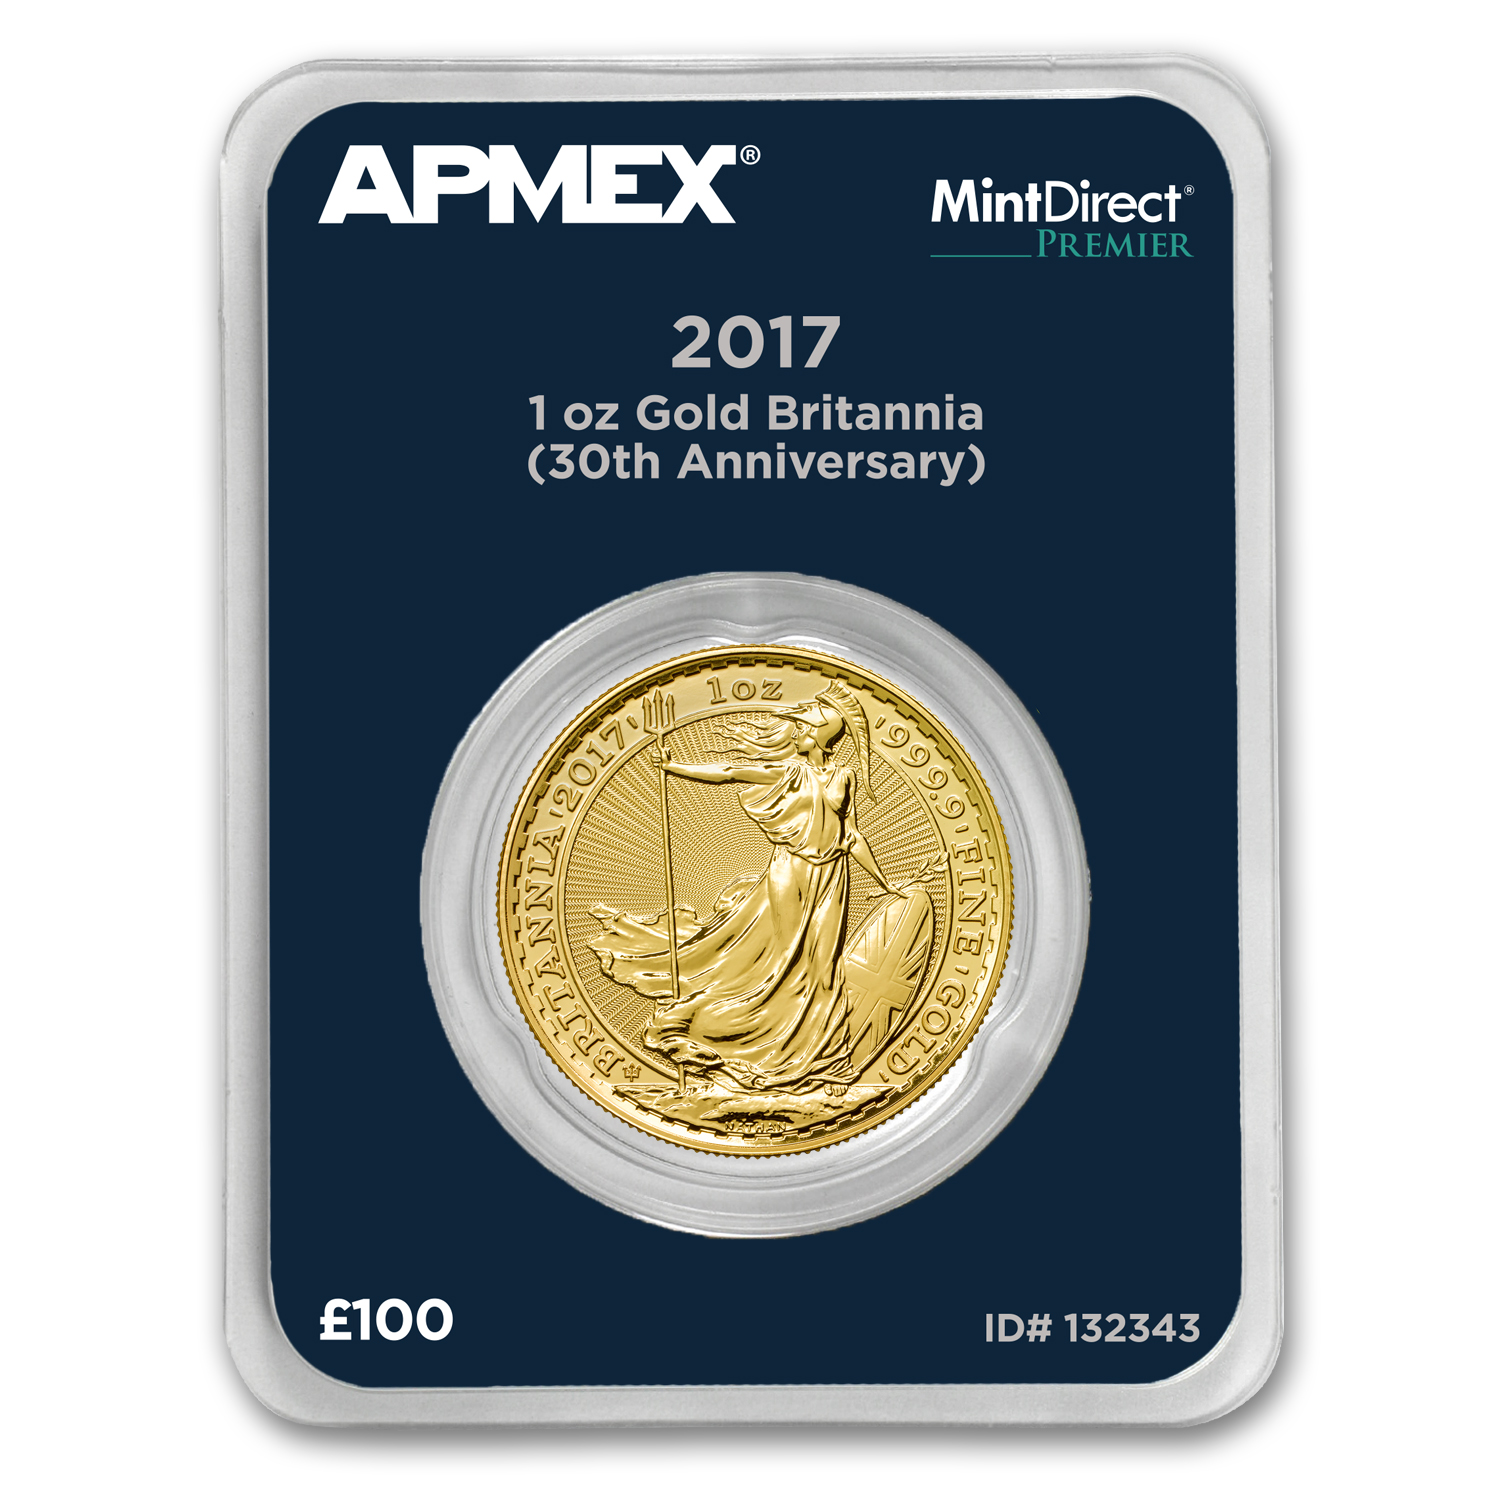 2017 1 oz Gold Britannia 30th Anniversary (MintDirect® Premier)